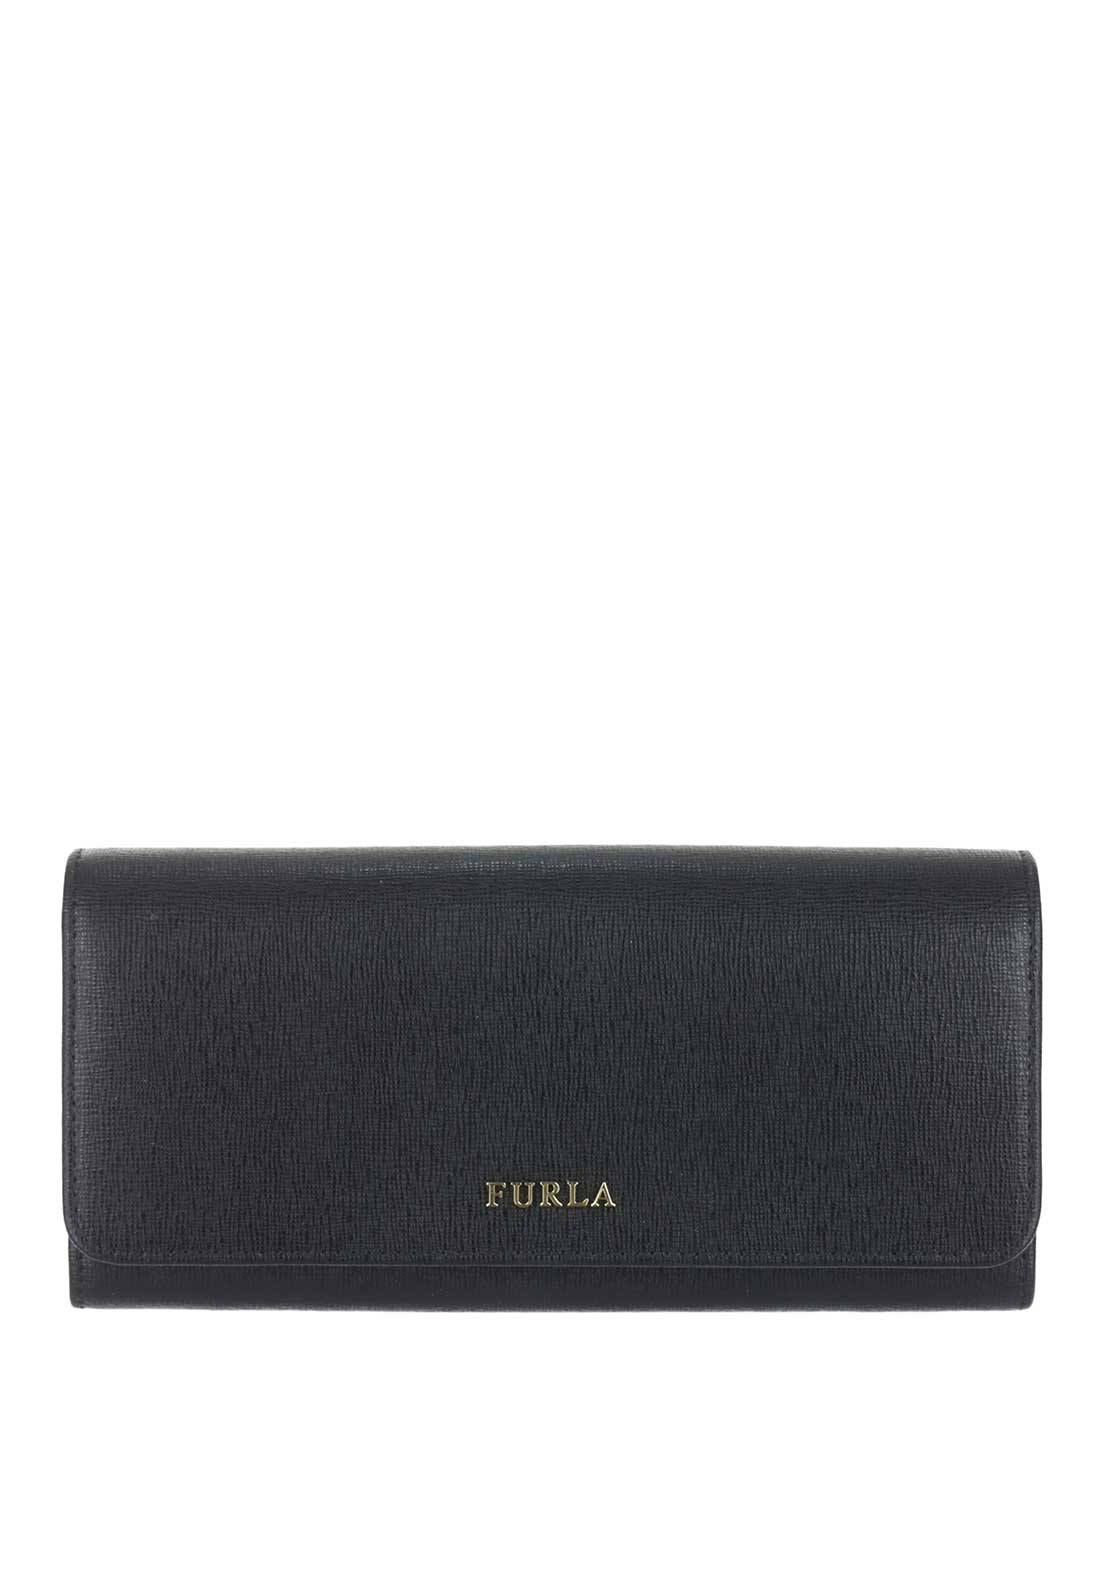 Furla Babylon Leather Drop Down Purse, Black